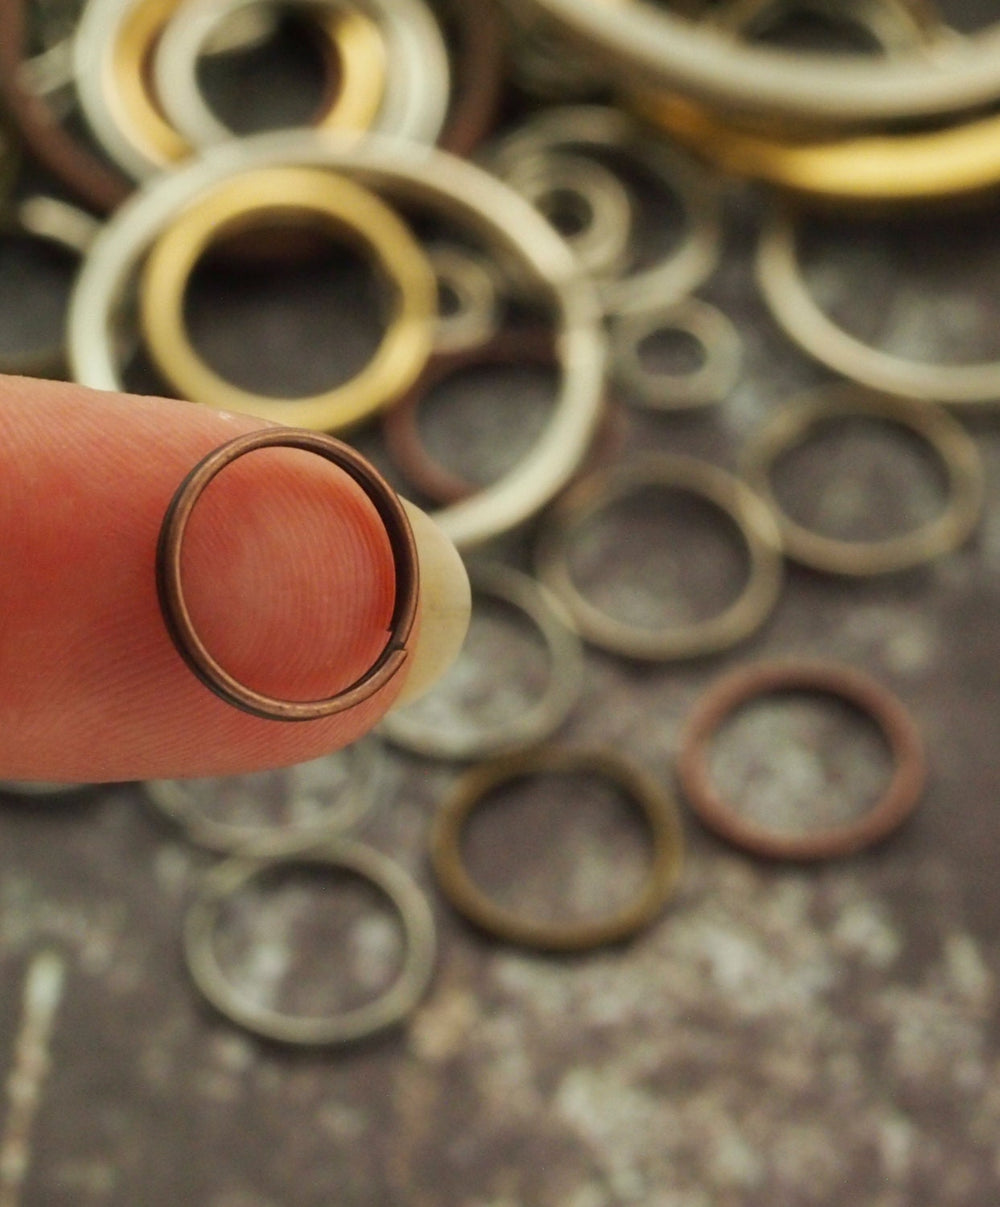 25 Antique Plated Brass Split Rings - 28mm OD - Antique Copper, Antique Brass or Gunmetal